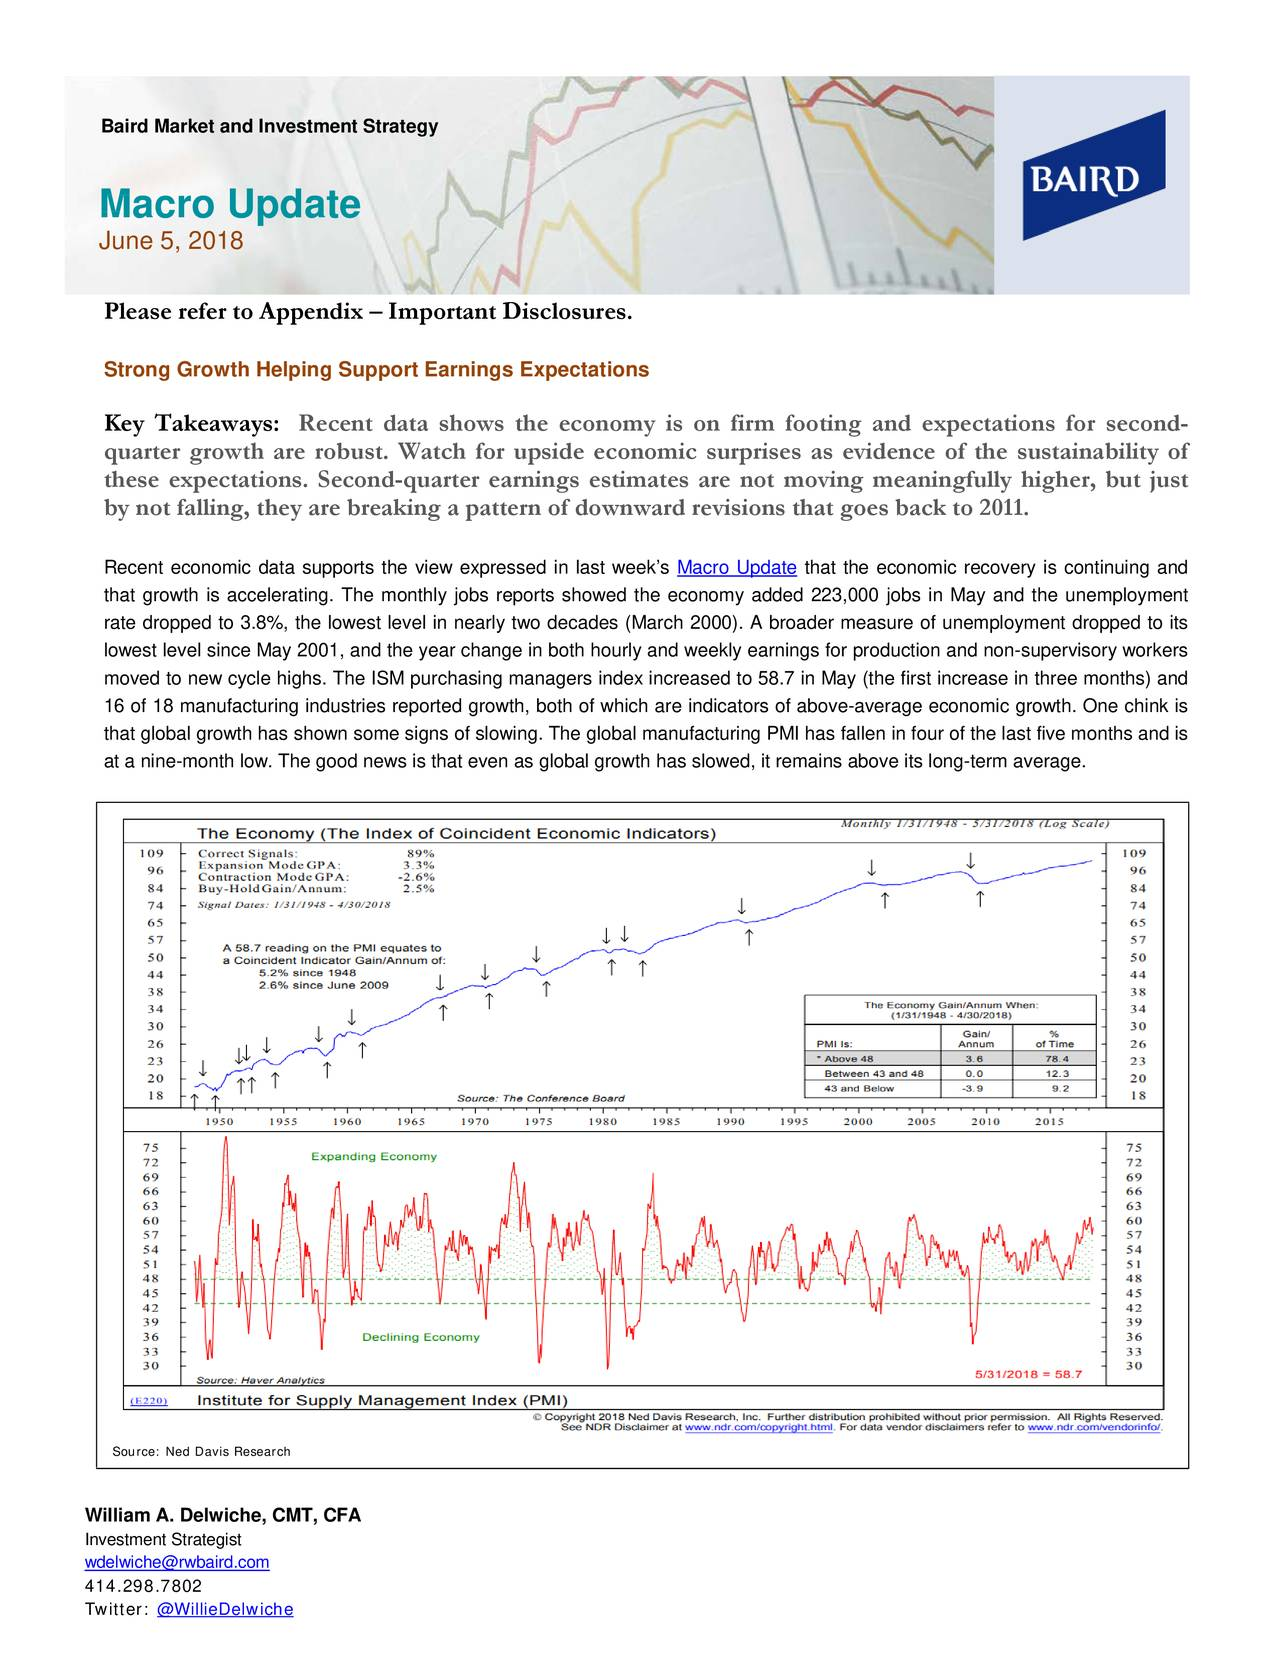 Macro Update June 5, 2018 Please refer to Appendix – Important Disclosures. Strong Growth Helping Support Earnings Expectations Key Takeaways: Recent data shows the economy is on firm footing and expectations for second - quarter growth are robust. Watch for upside economic surprises as evidence of the sustainability of these expectations. Second-quarter earnings estimates are not moving meaningfully higher, but just by not falling, they are breaking a pattern of downward revisions that goes back to 2011. Recent economic data supports the view expressed in last week's Macro Updatthat the economic recovery is continuing and that growth is accelerating. The monthly jobs reports showed the economy added 223,000 jobs in May and the unemployment rate dropped to 3.8%, the lowest level in nearly two decades (March 2000). A broader measure of unemployment dropped to its lowest level since May 2001, and the year change in both hourly and weekly earnings for production and non- supervisory workers moved to new cycle highs. The ISM purchasing managers index increased to 58.7 in May (the first increase in three months) and 16 of 18 manufacturing industries reported growth, both of which are indicators of above- average economic growth. One chink is that global growth has shown some signs of slowing. The global manufacturing PMI has fallen in four of the last five months and is at a nine-month low. The good news is that even as global growth has slowed, it remains above its long-term average. Source: Ned Davis Research William A. Delwiche, CMT, CFA Investment Strategist wdelwiche@rwbaird.com 414.298.7802 Twitter: @WillieDelwiche